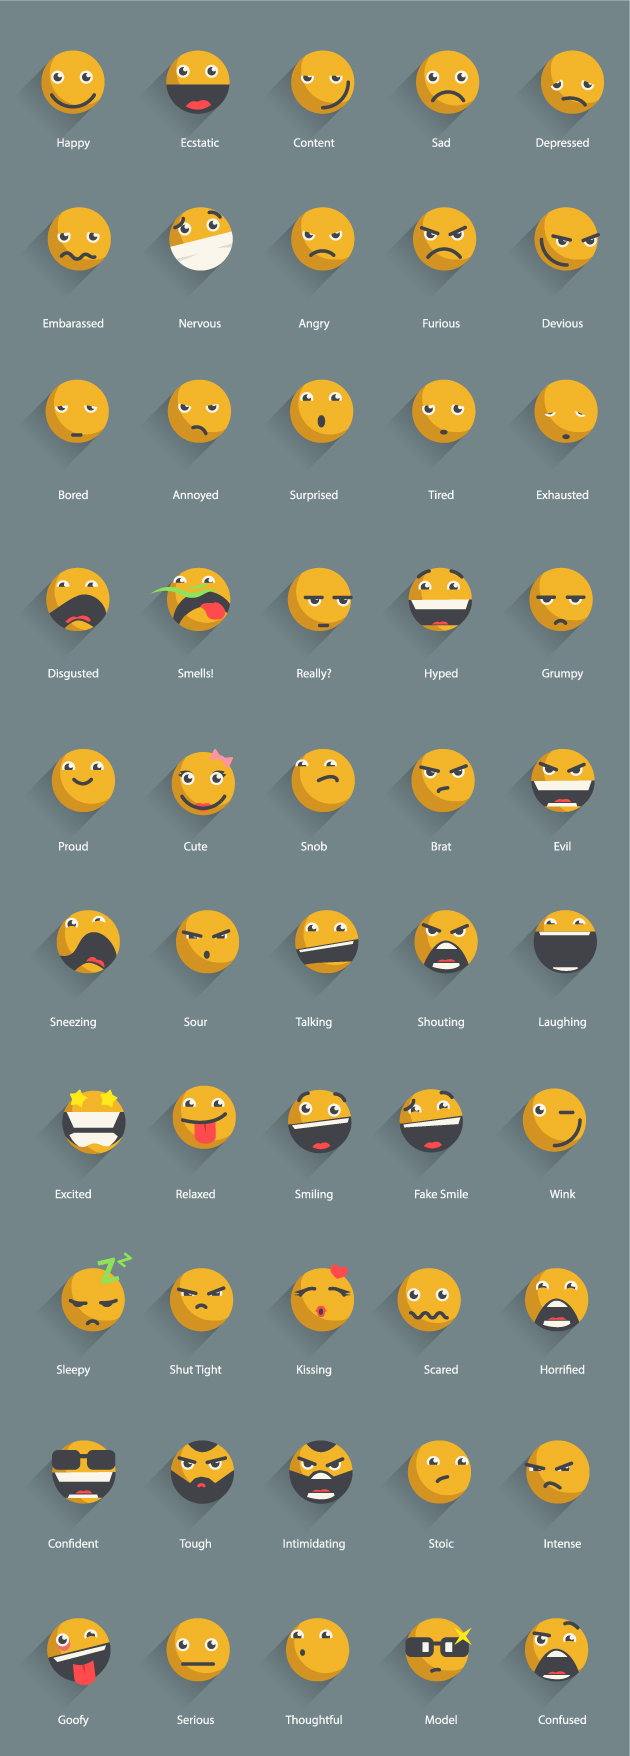 25 beautiful smiley and emoticons icon packs designmaz yellow shadowed emoticons icons vector free buycottarizona Choice Image